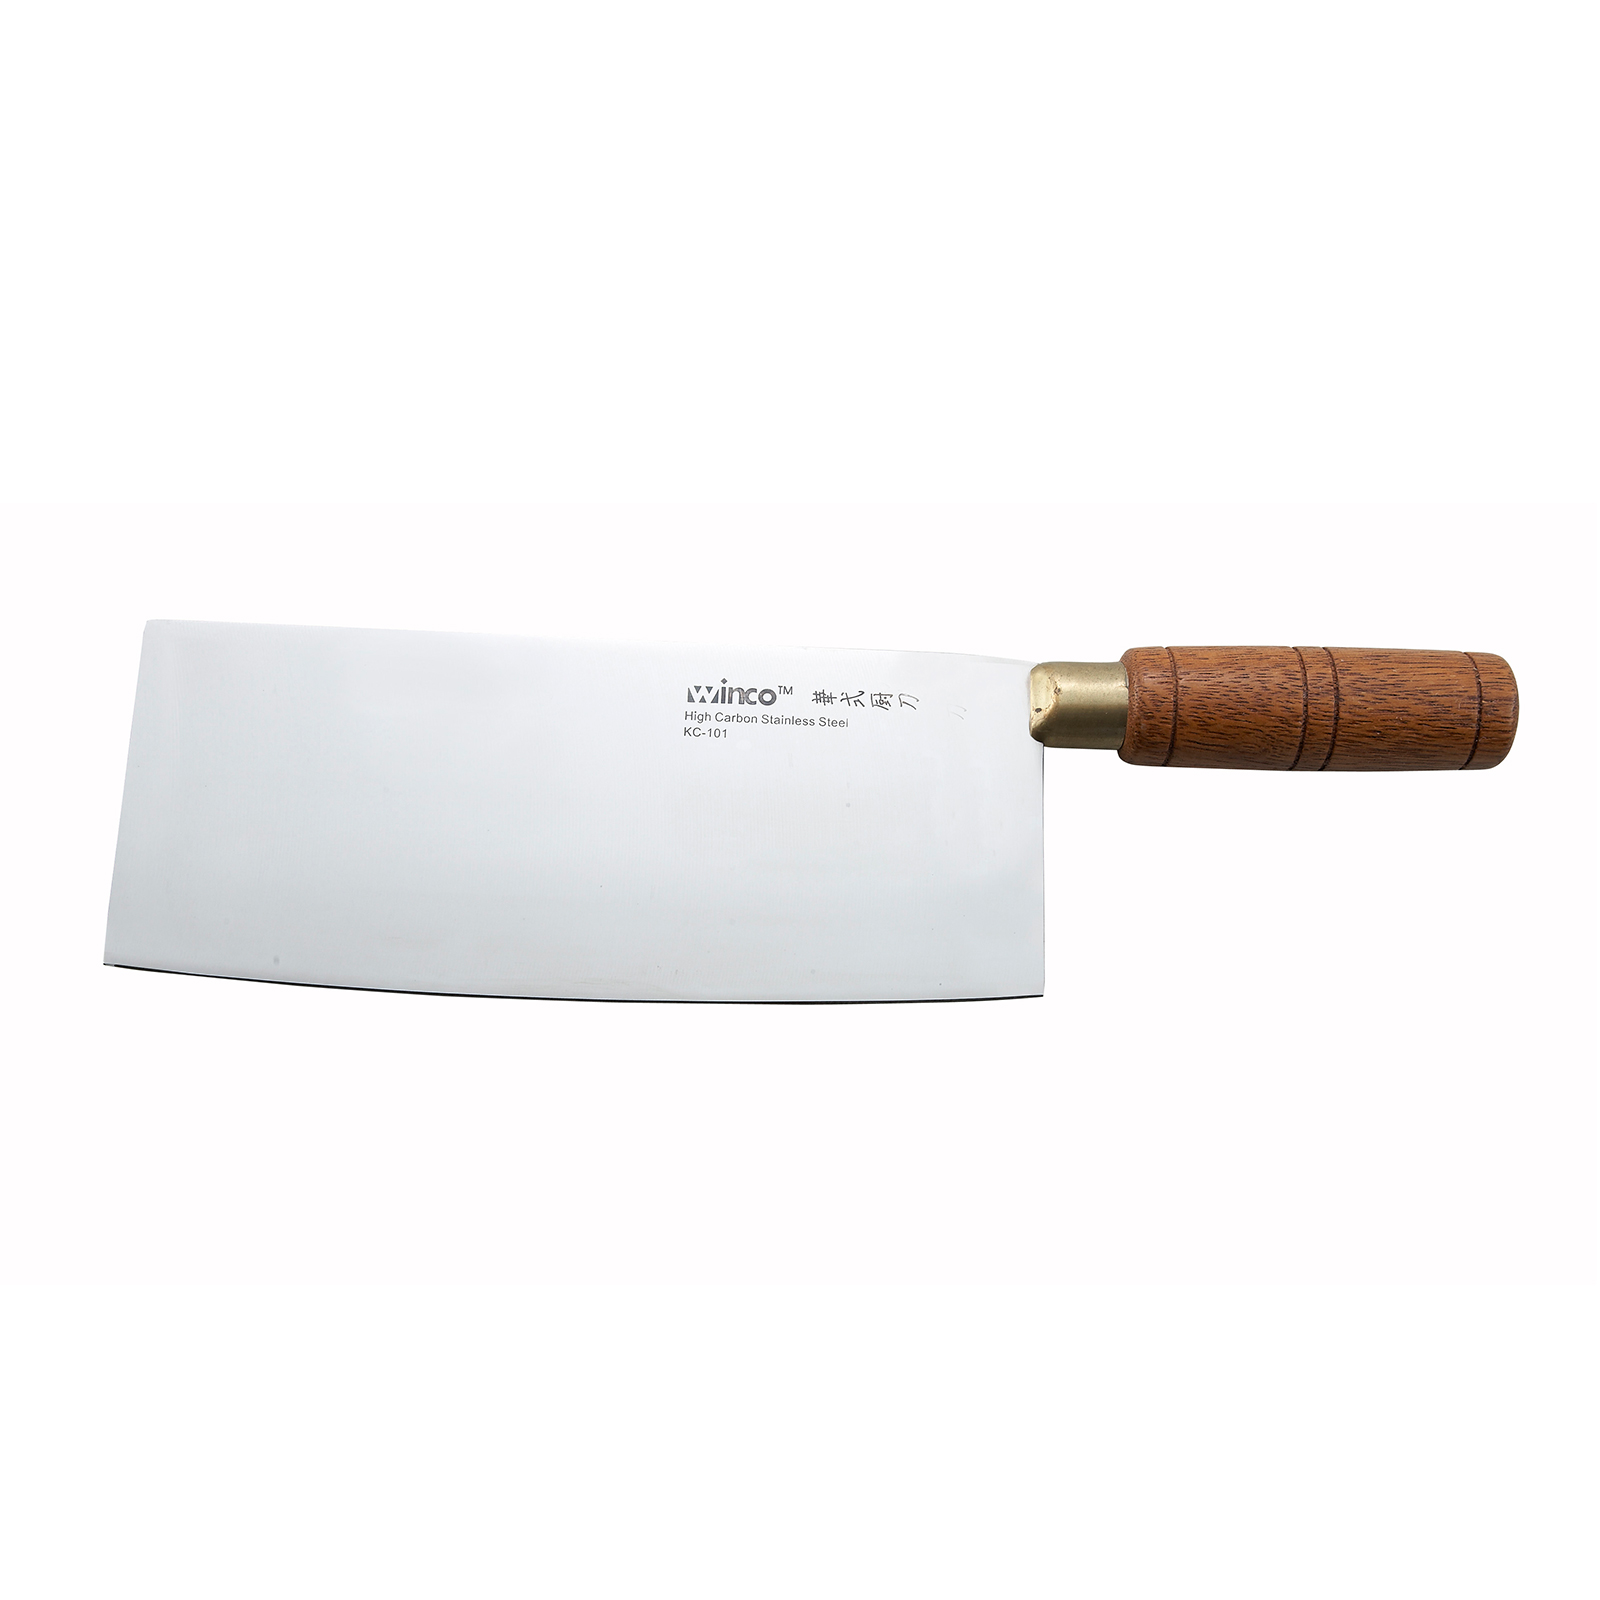 Winco KC-101 knife, cleaver